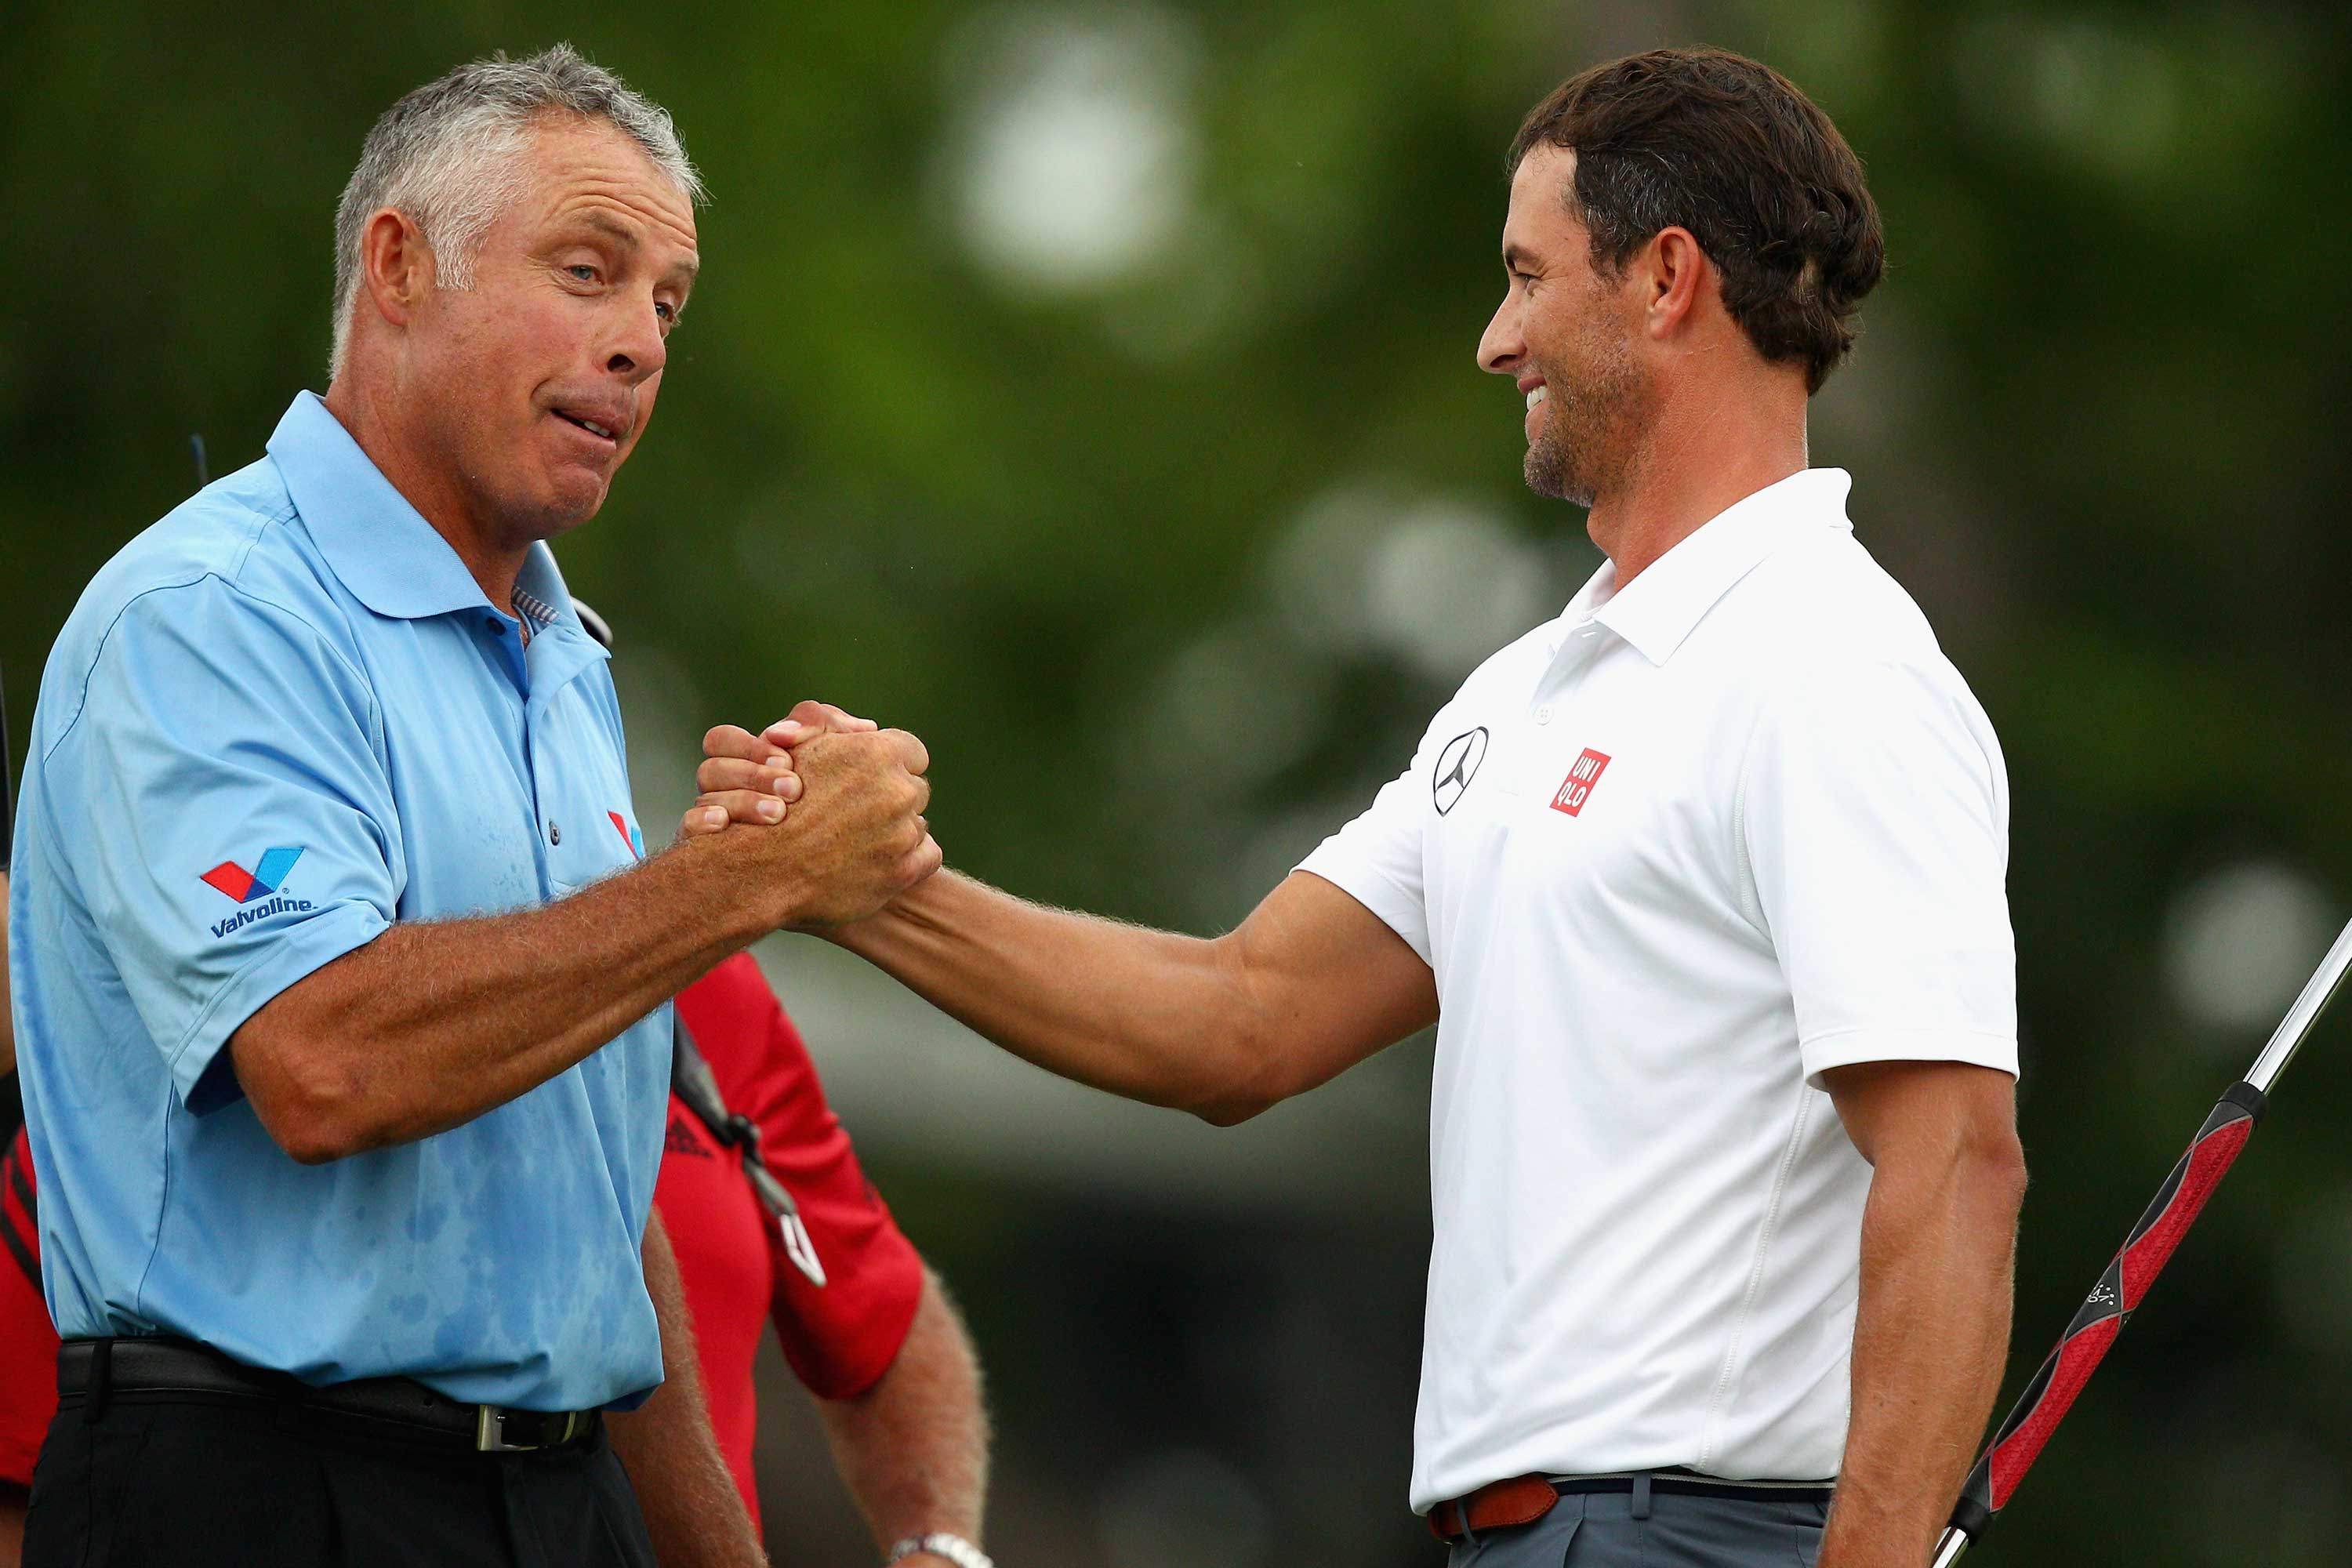 Steve Williams is to caddie for Adam Scott for the next four events (Photo: Getty Images)